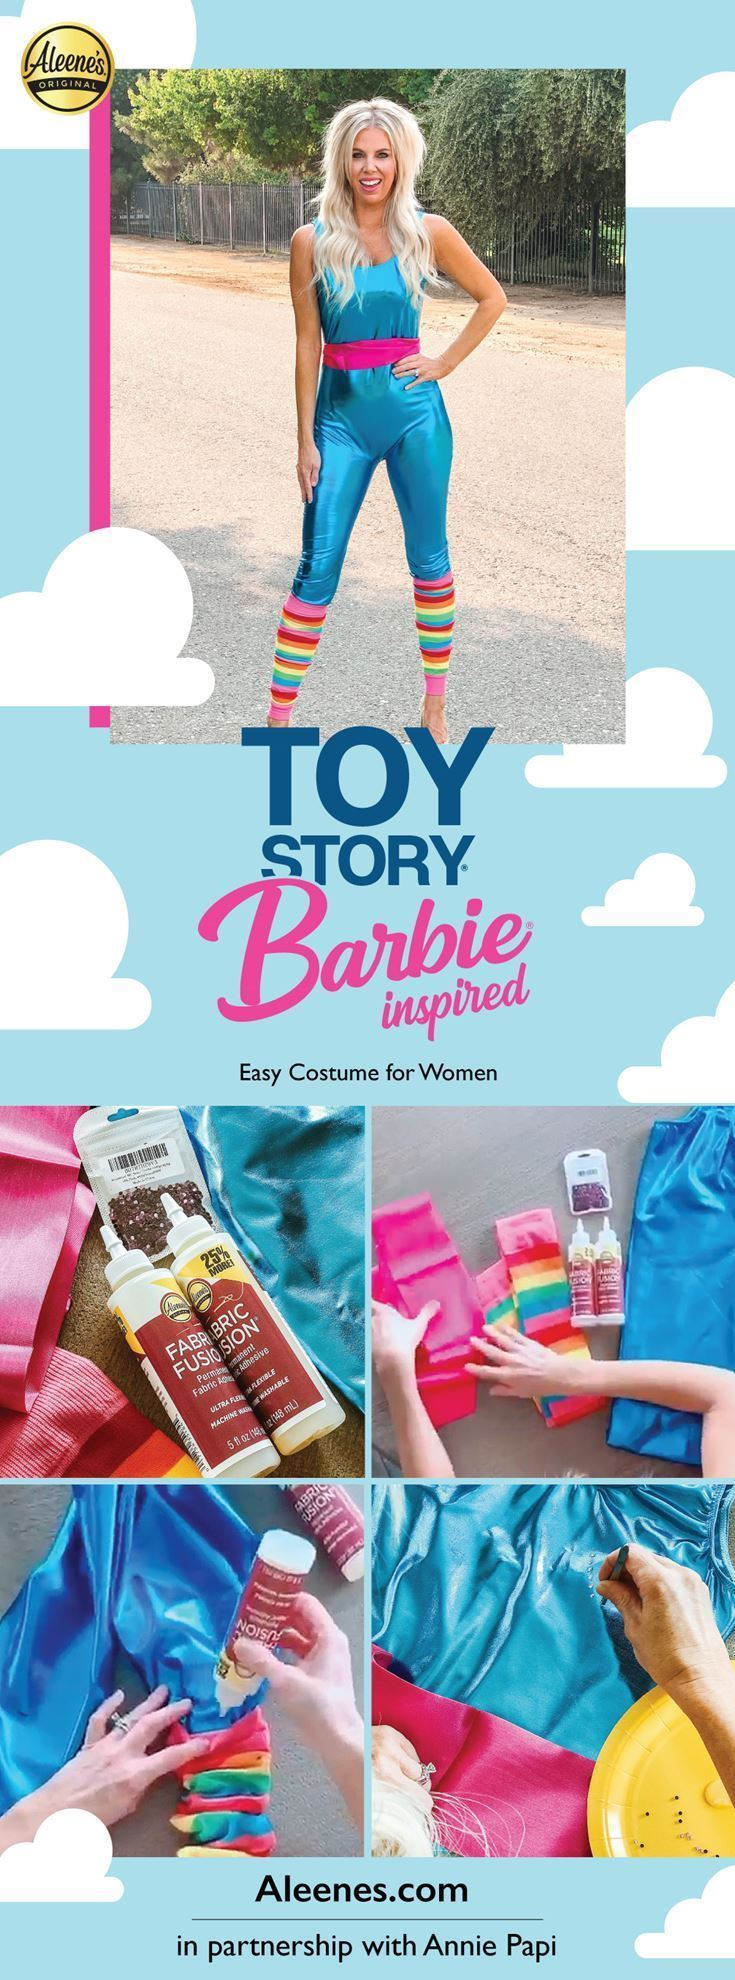 Aleene's Toy Story Barbie Inspired Costume